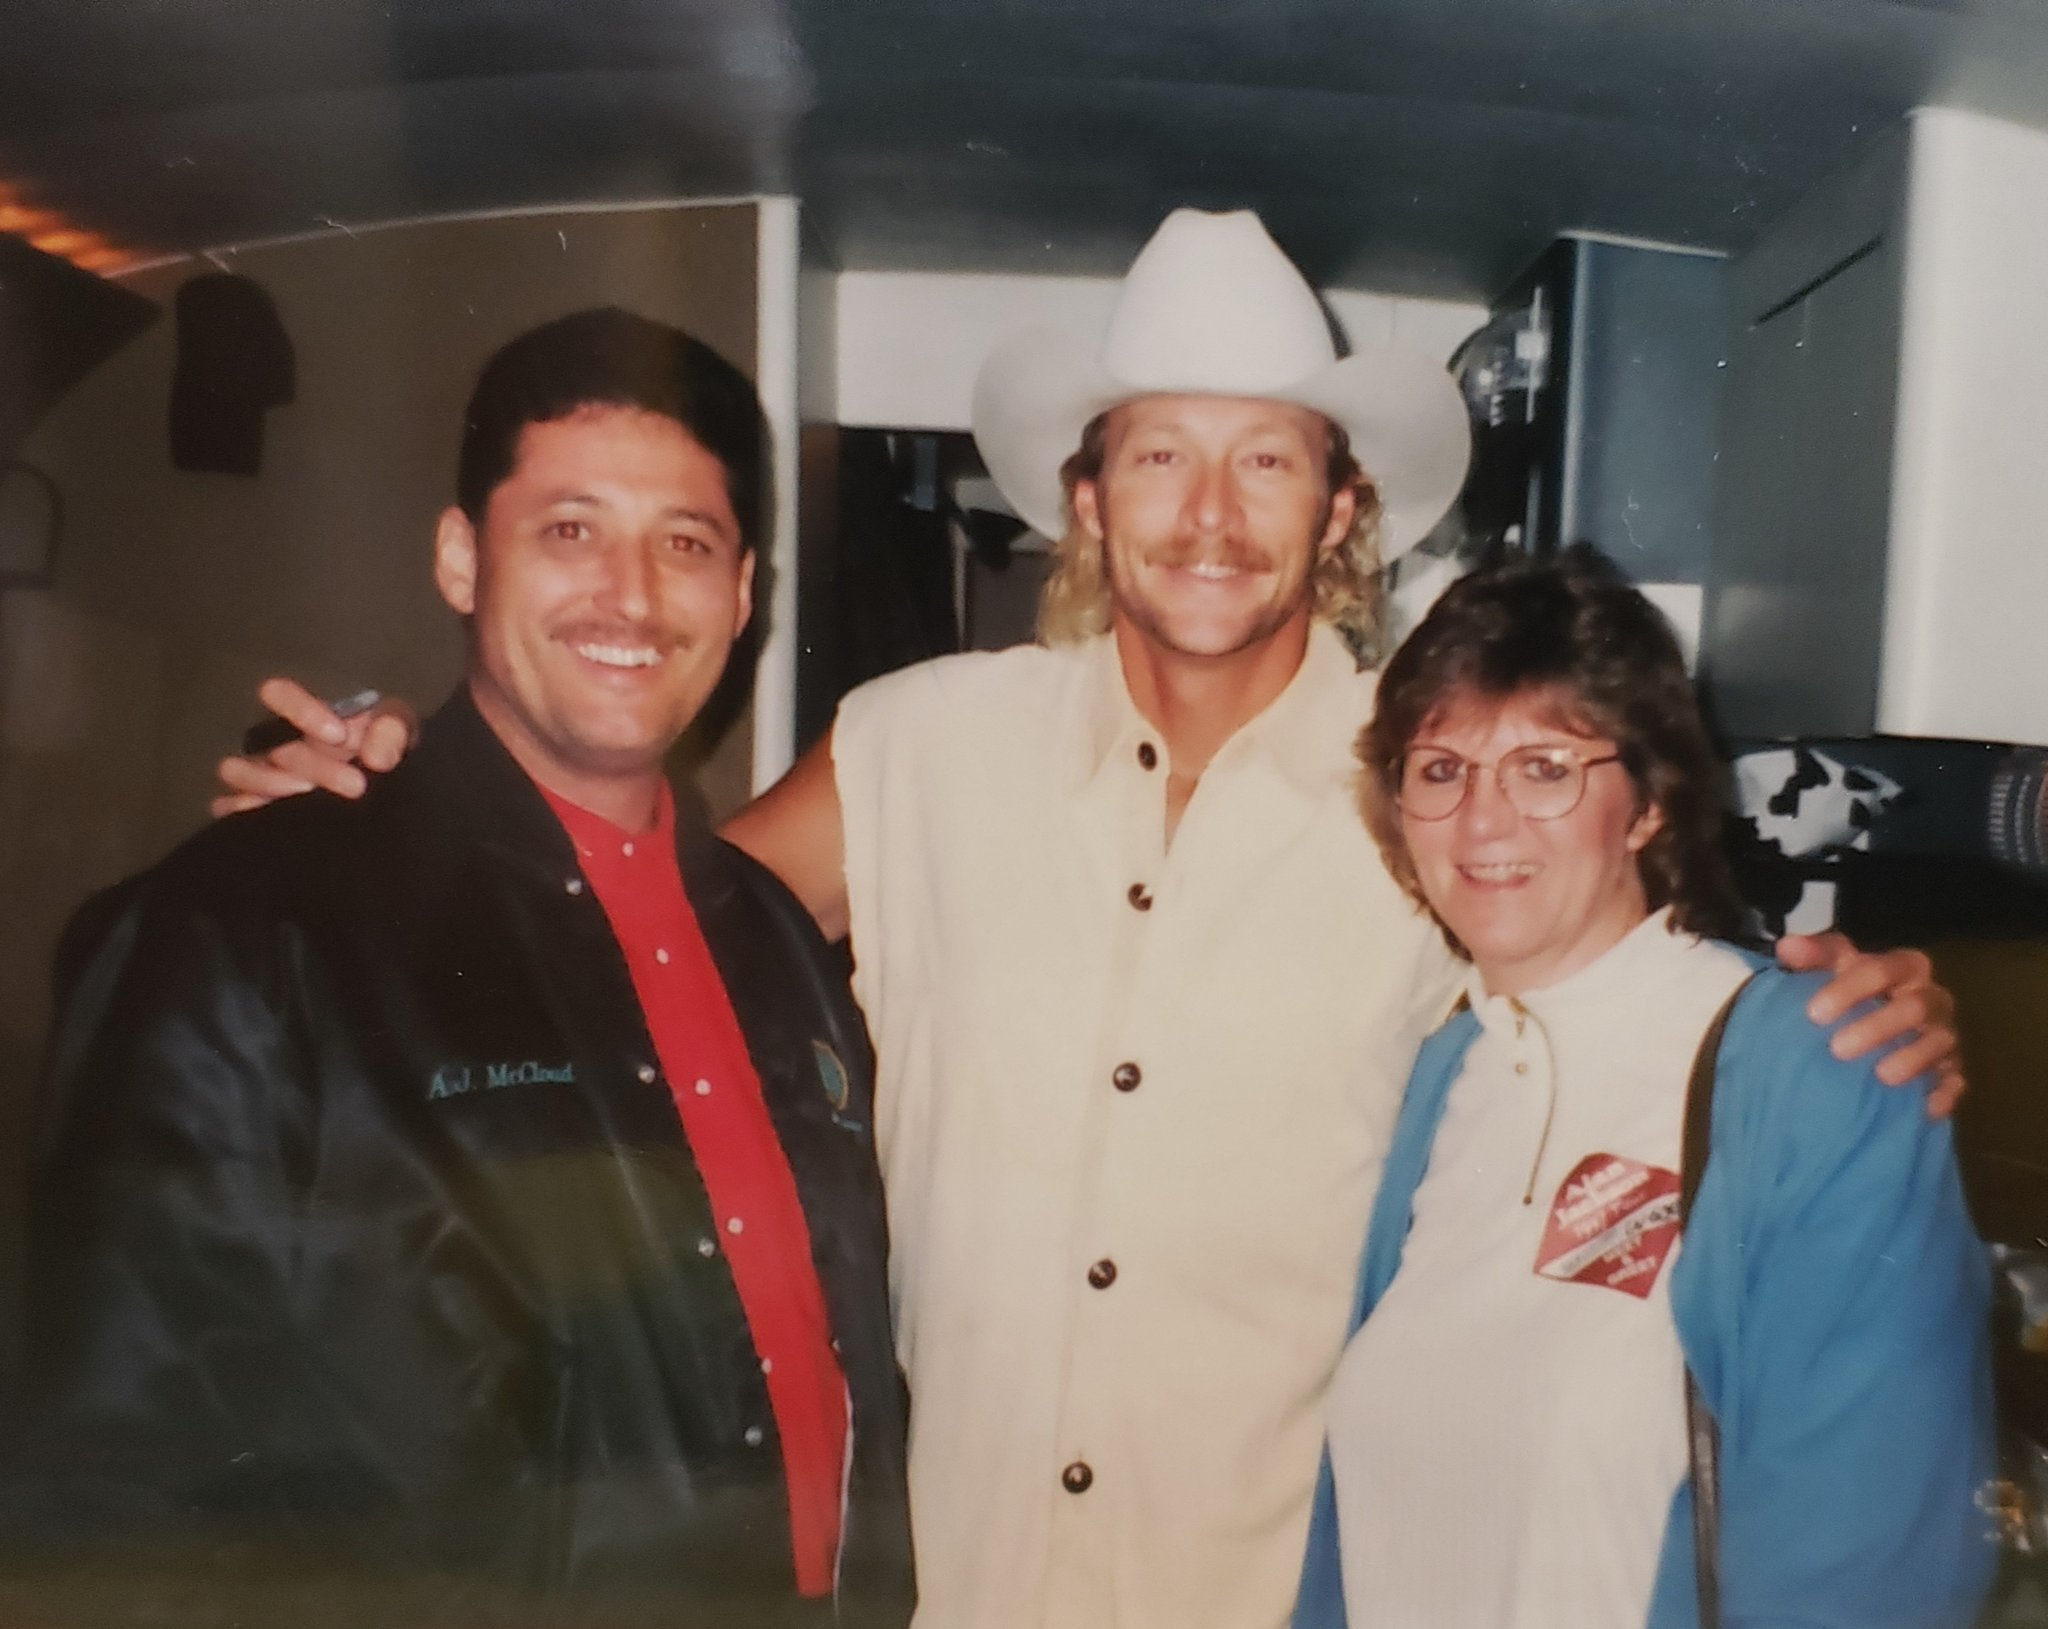 Happy Birthday Alan Jackson. This photo was taken in the 1990s at Star Lake Amphitheater in Burgettstown, PA.